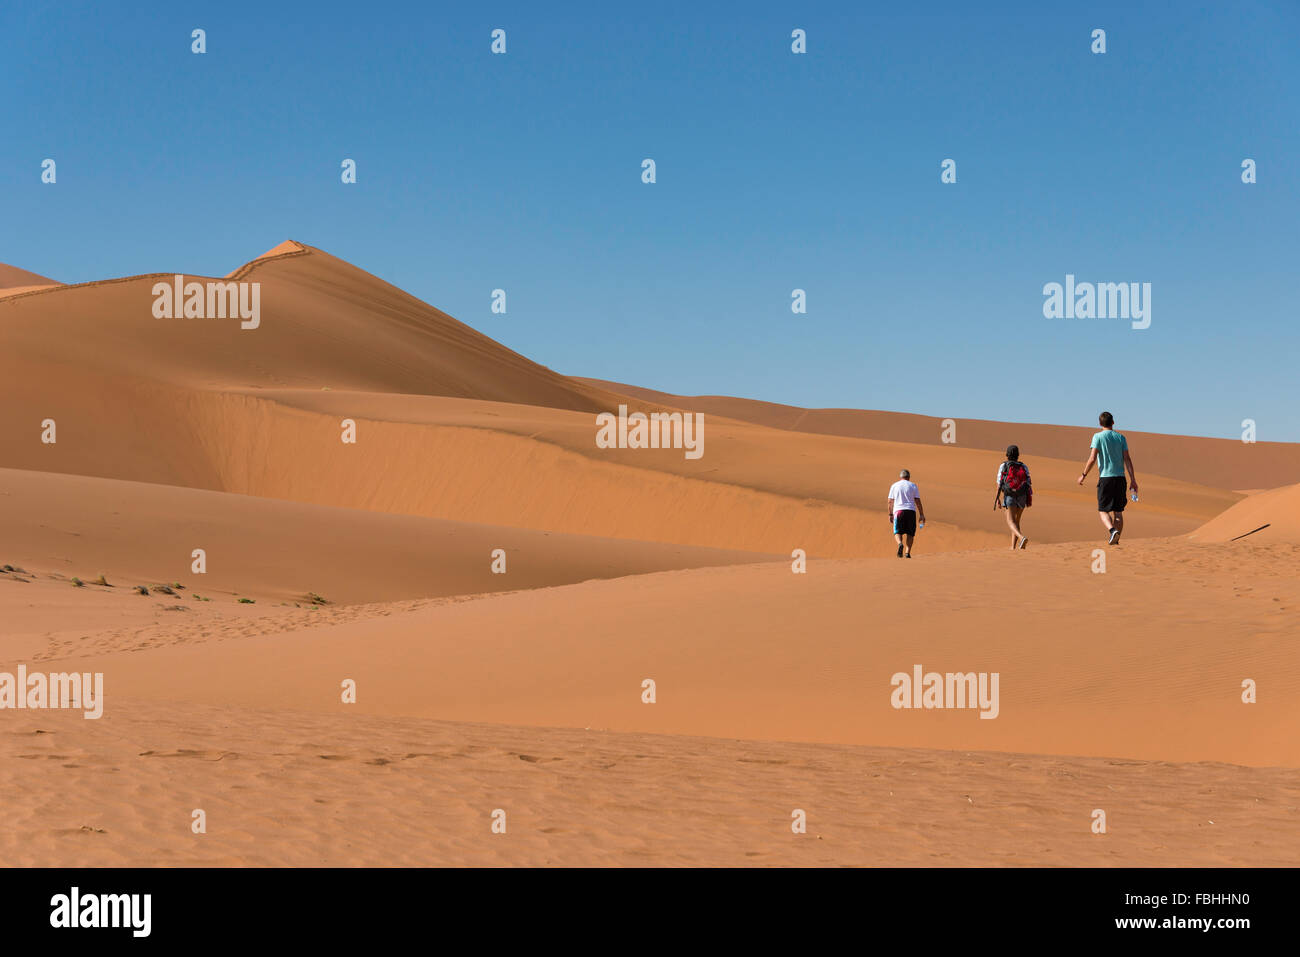 Group walking in desert, Sossusvlei, Désert du Namib, le parc de Namib Naukluft, Région Hardap, République Photo Stock